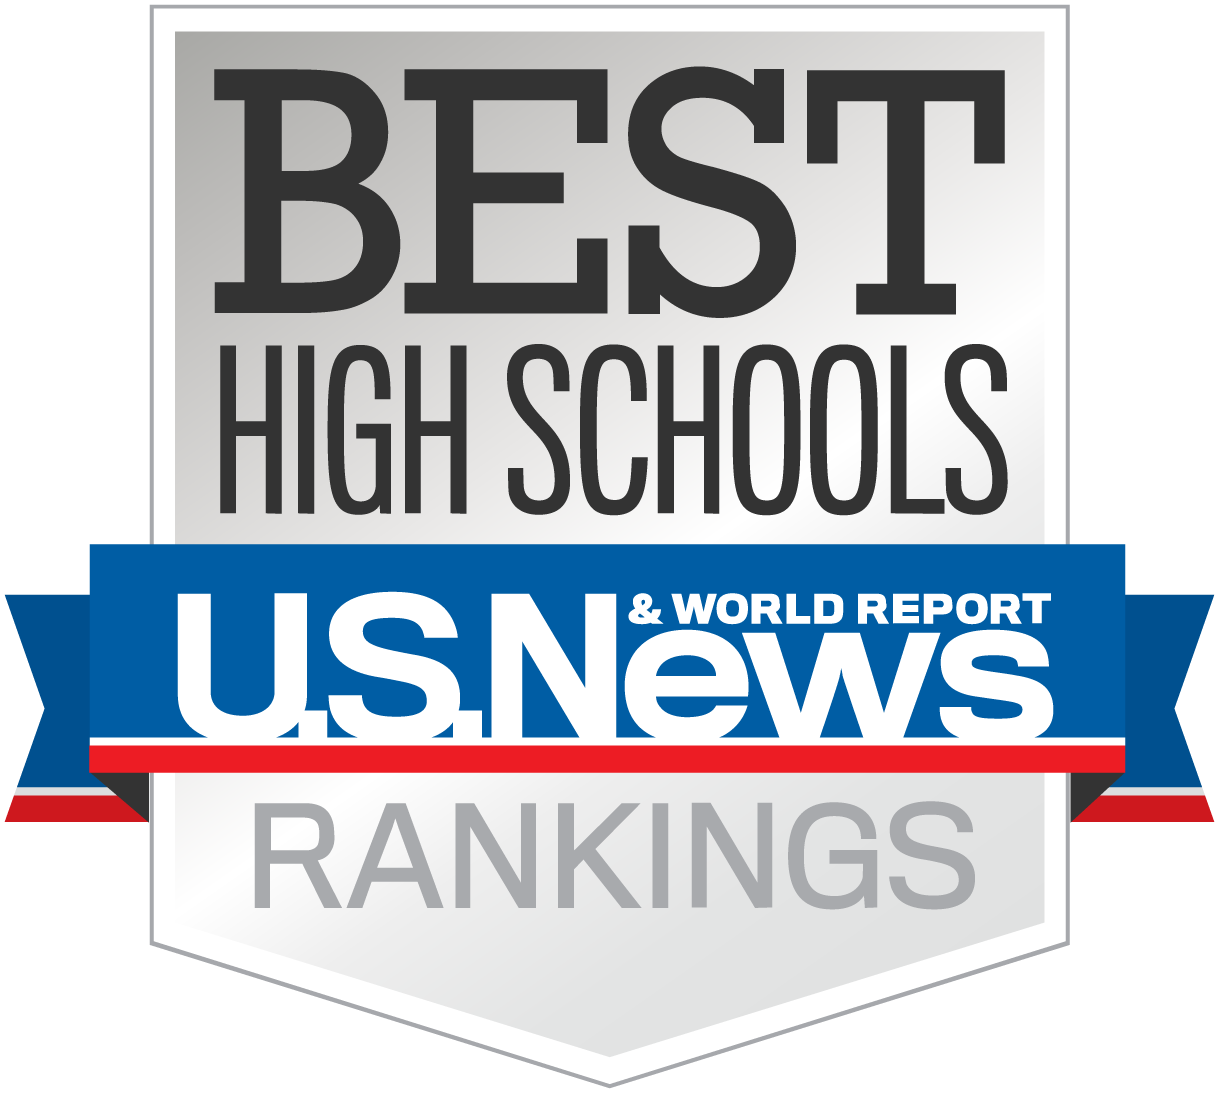 Norton High School Ranking Logo